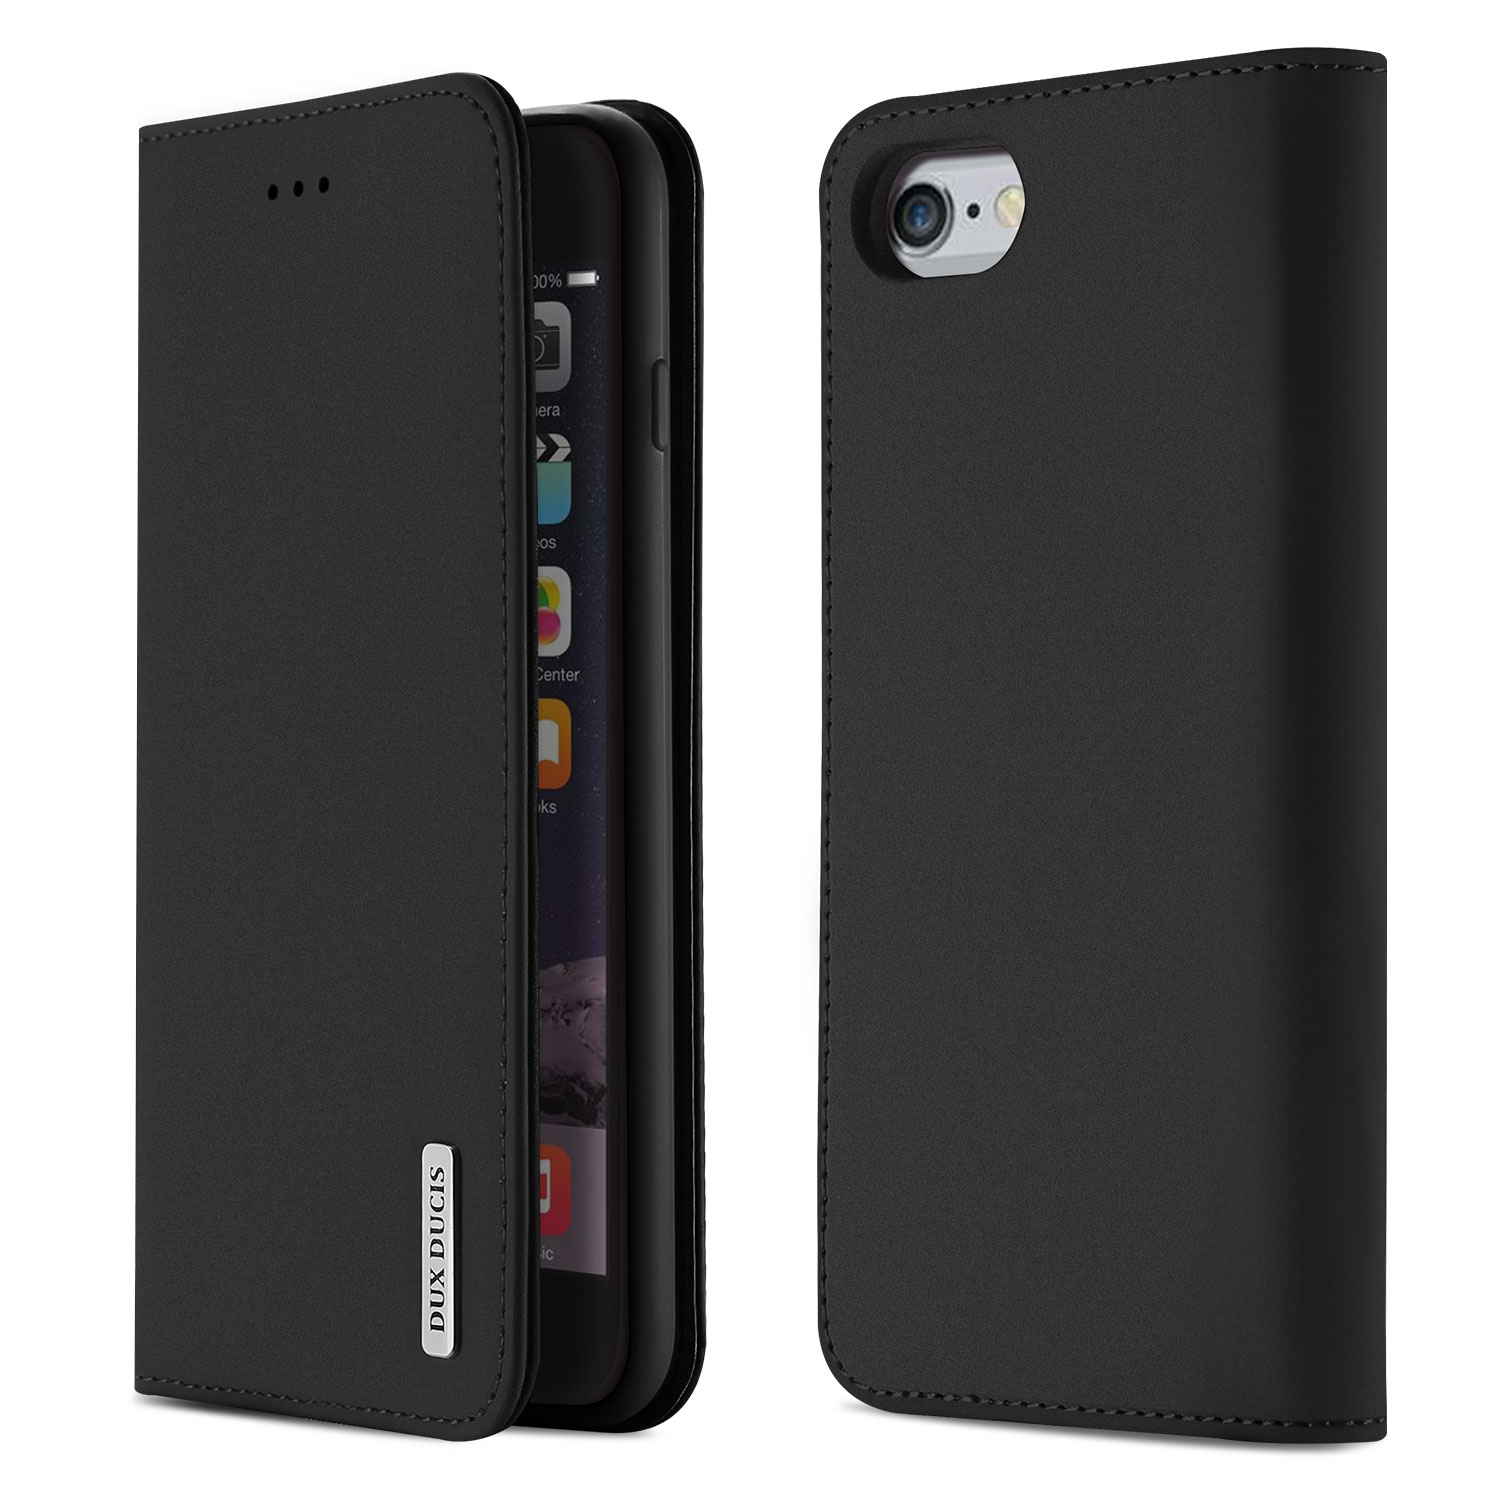 DUX DUCIS For iPhone 6/6s Luxury Genuine Leather Magnetic Flip Cover Full Protective Case with Bracket Card Slot black